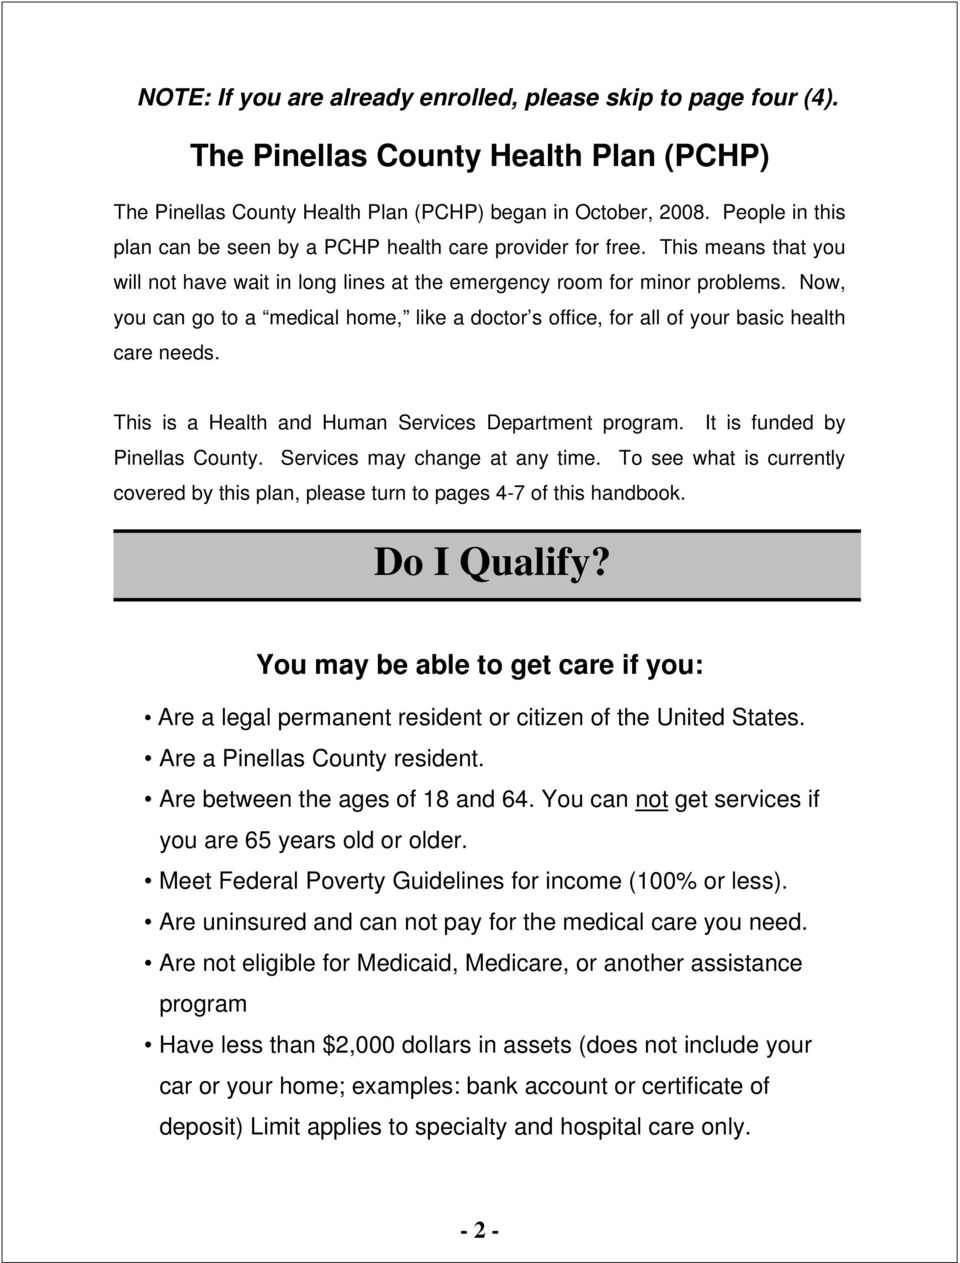 Now, you can go to a medical home, like a doctor s office, for all of your basic health care needs. This is a Health and Human Services Department program. It is funded by Pinellas County.